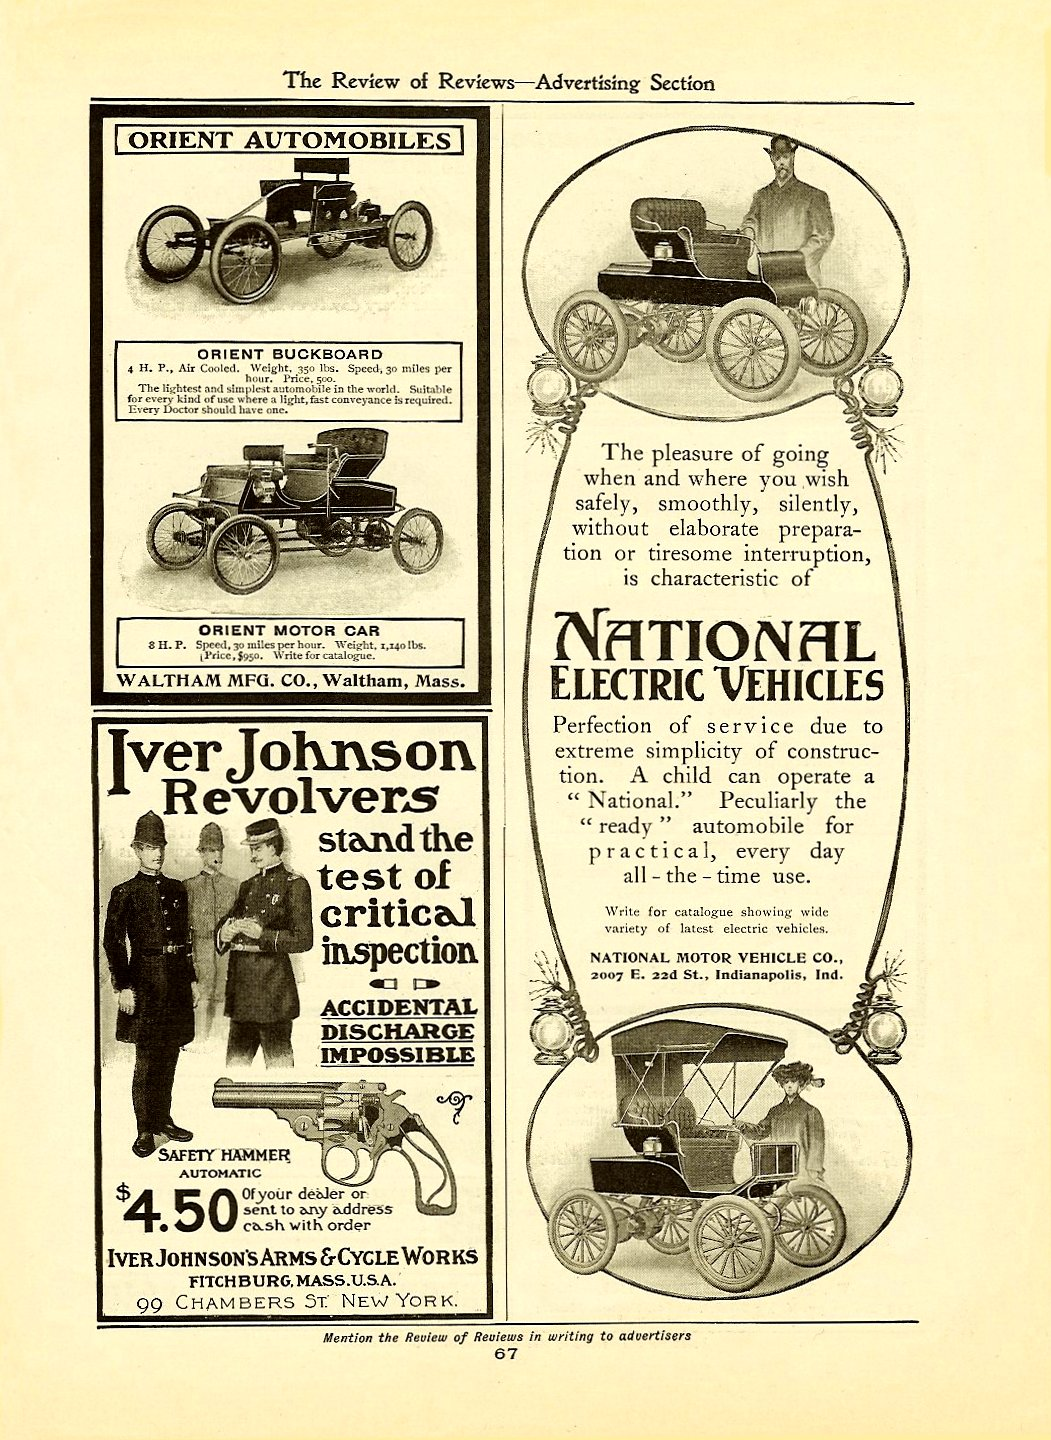 1903 3 NATIONAL ELECTRIC VEHICLES The Review of Reviews-Advertising Section March 1903 7″x9.5″ page 67